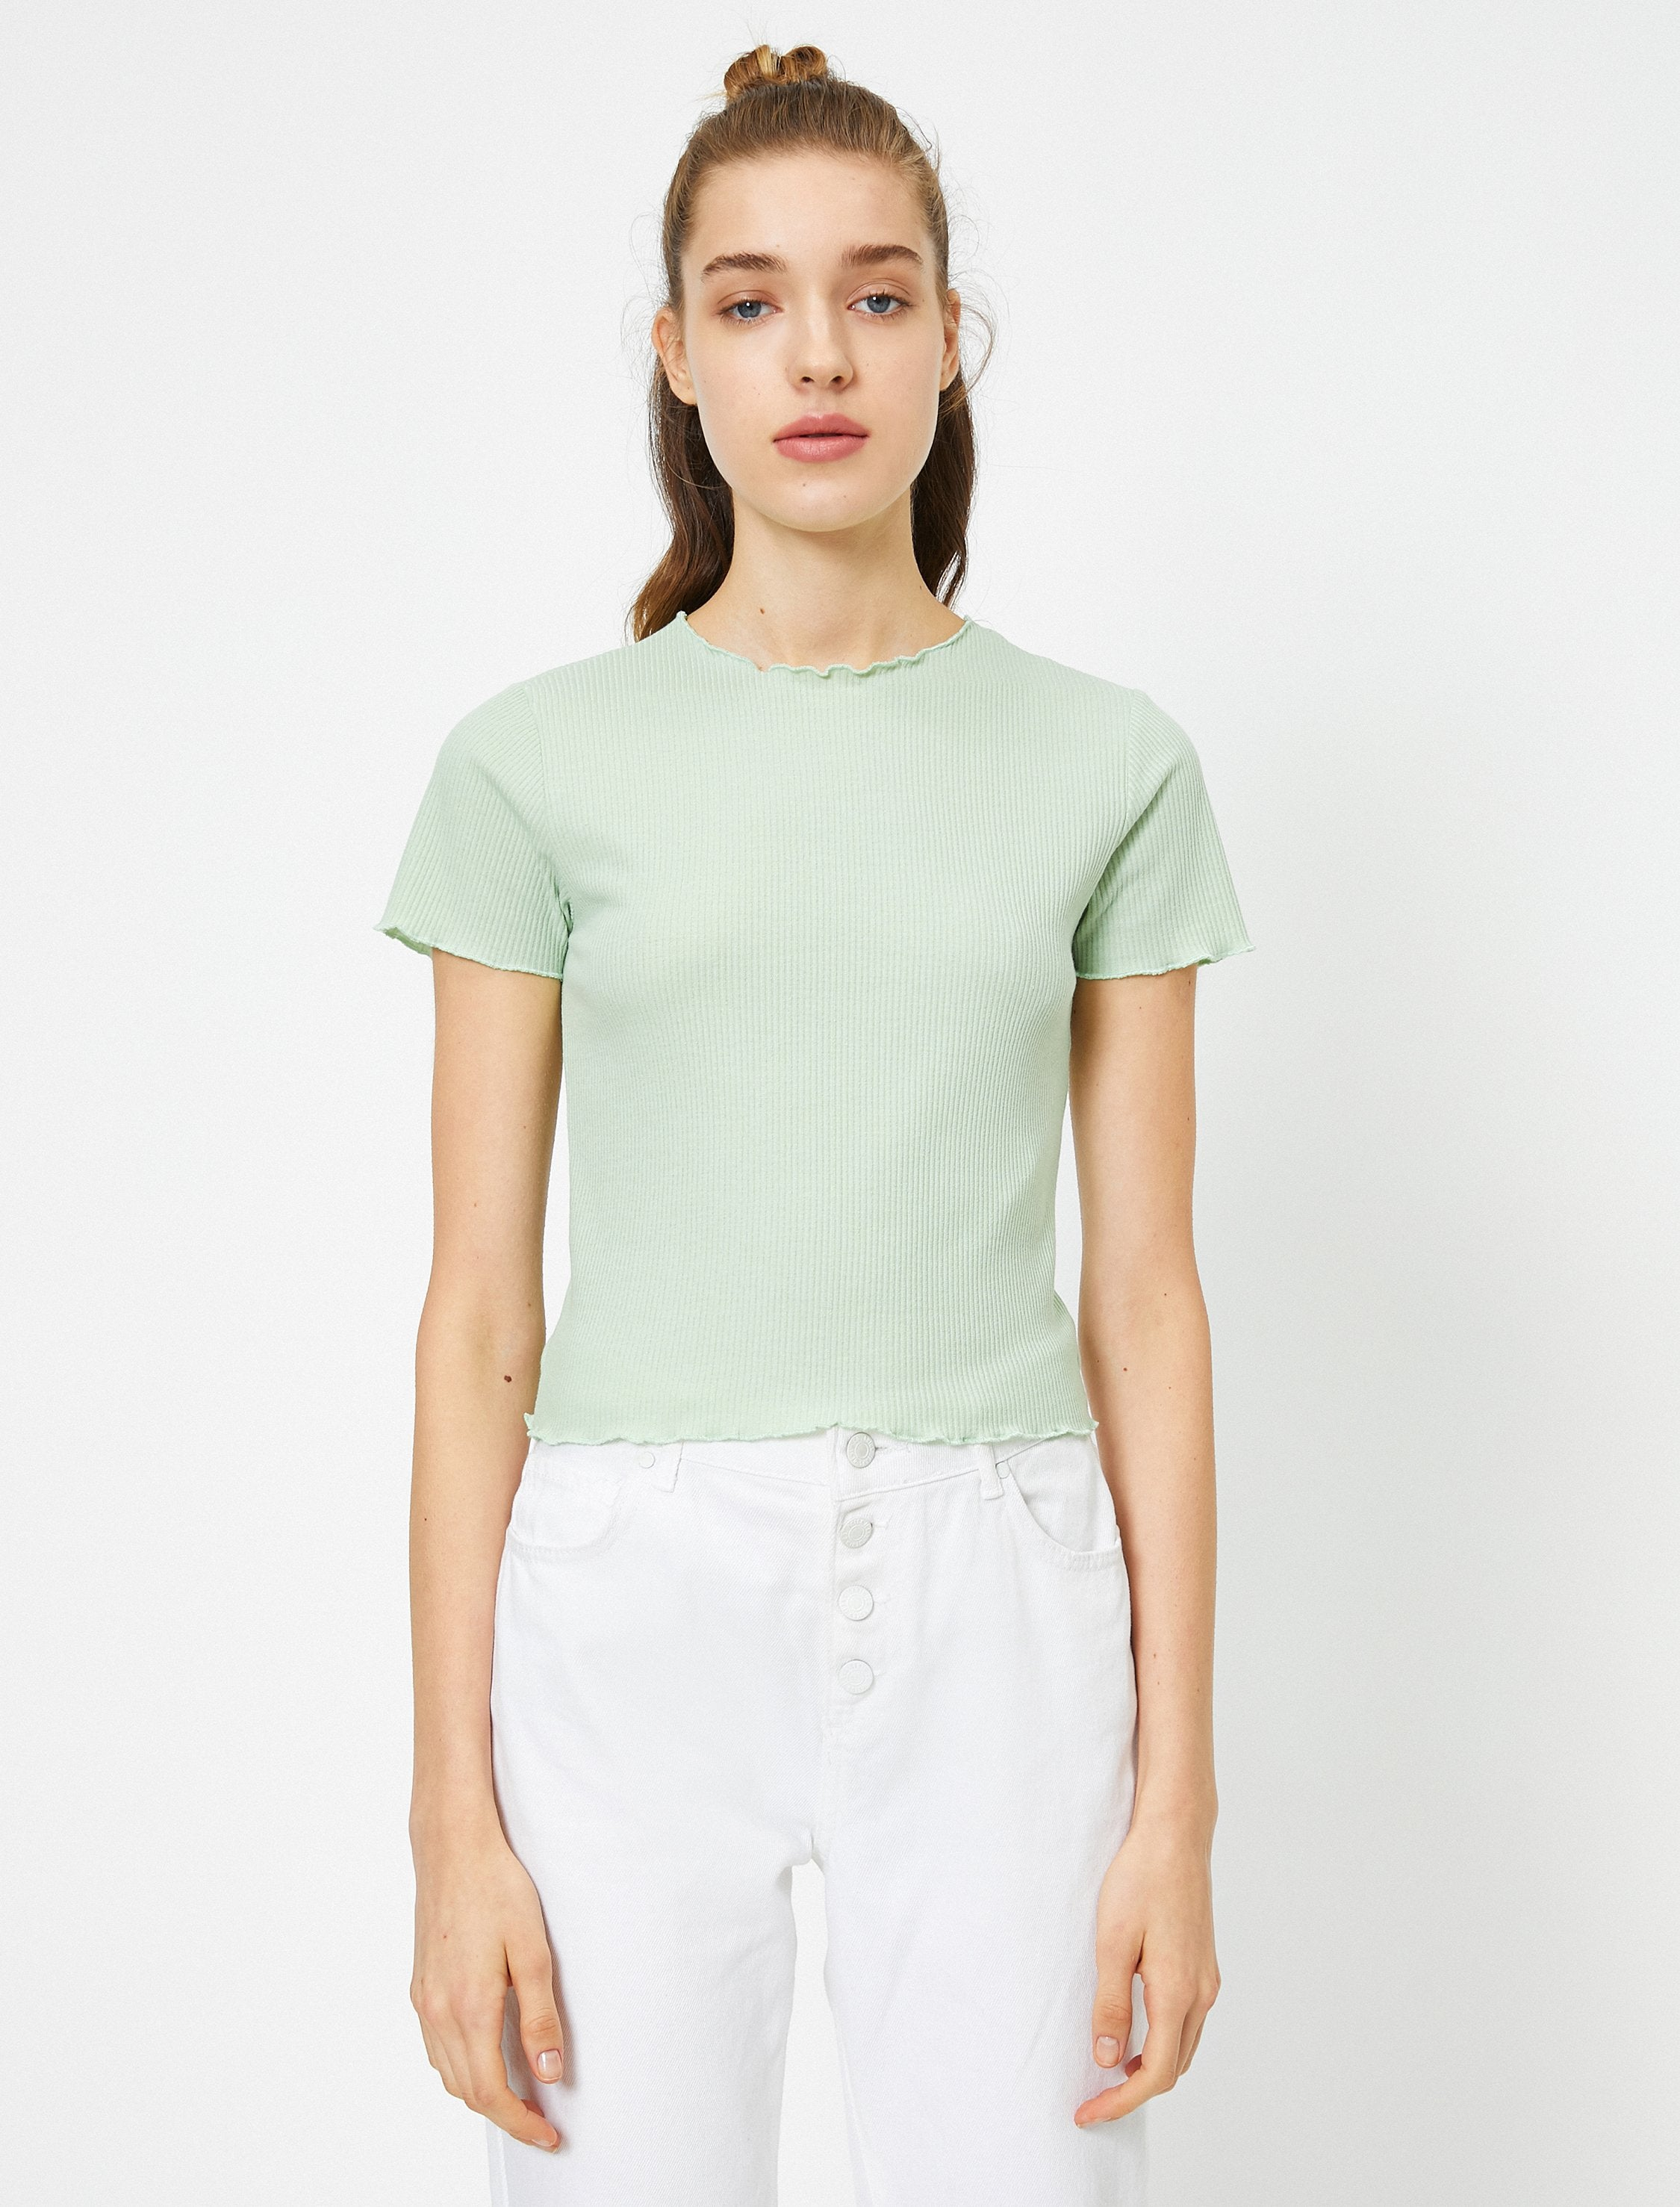 Ribbed Lettuce-Edge Tshirt in Green